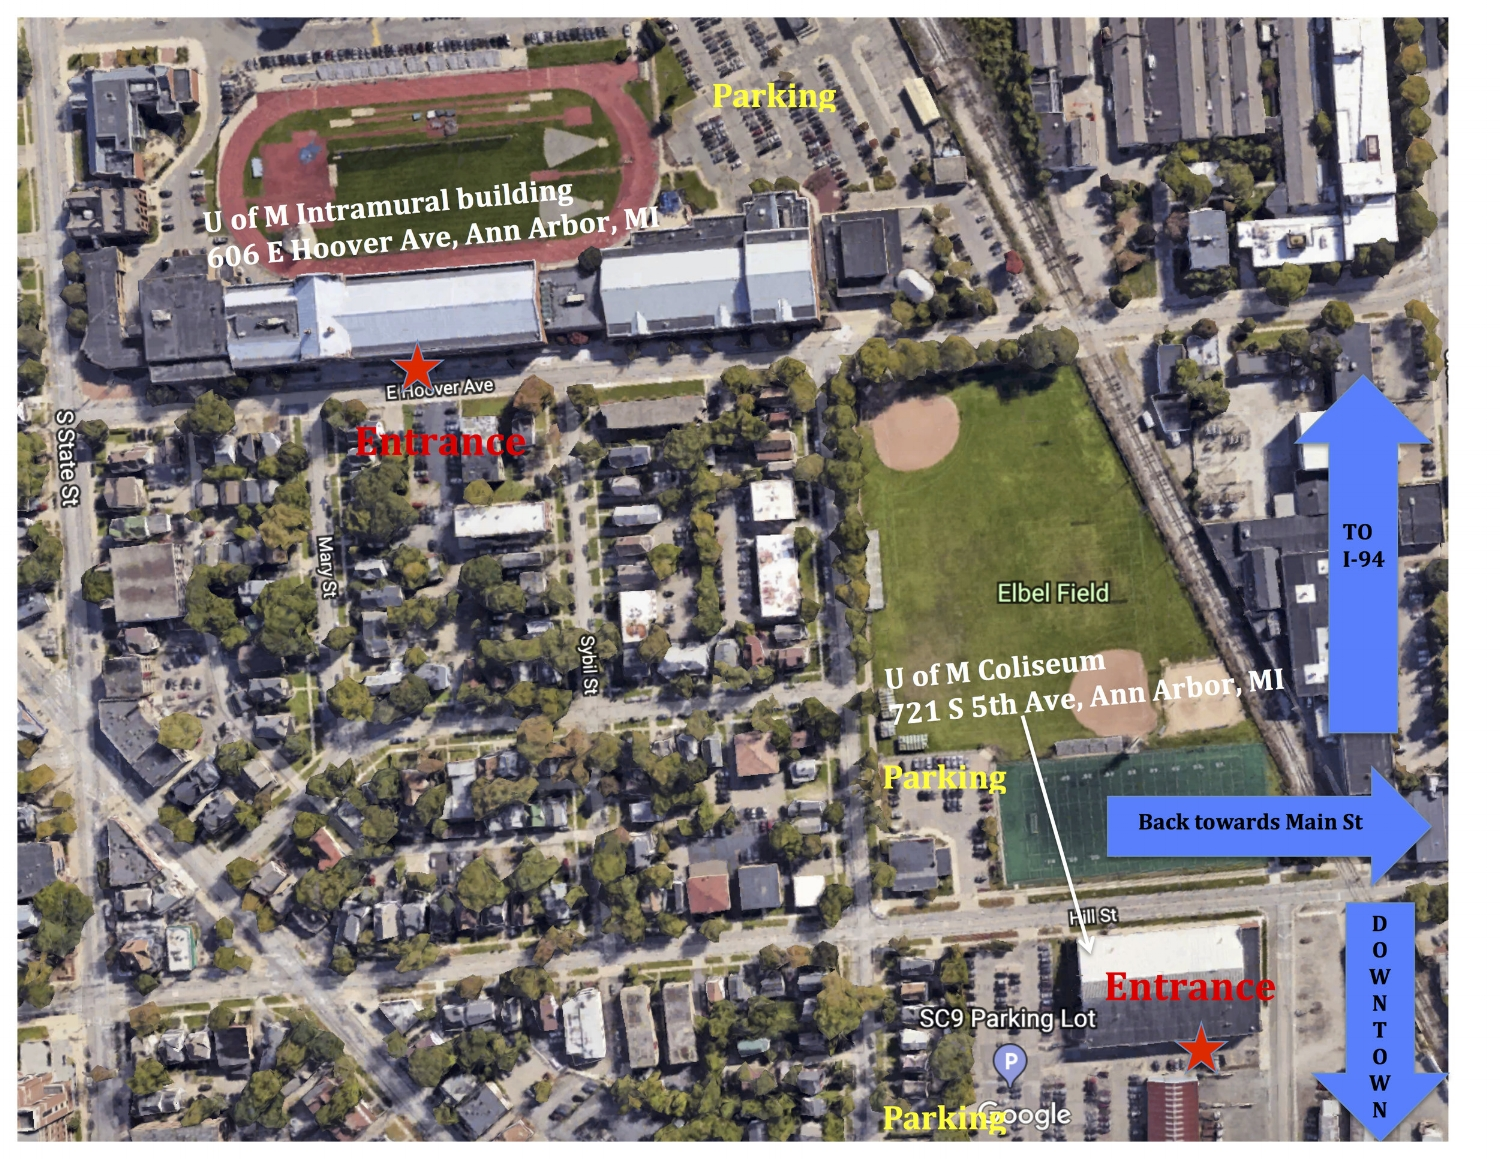 U OF M COLISEUM & INTRAMURAL BUILDING MAP